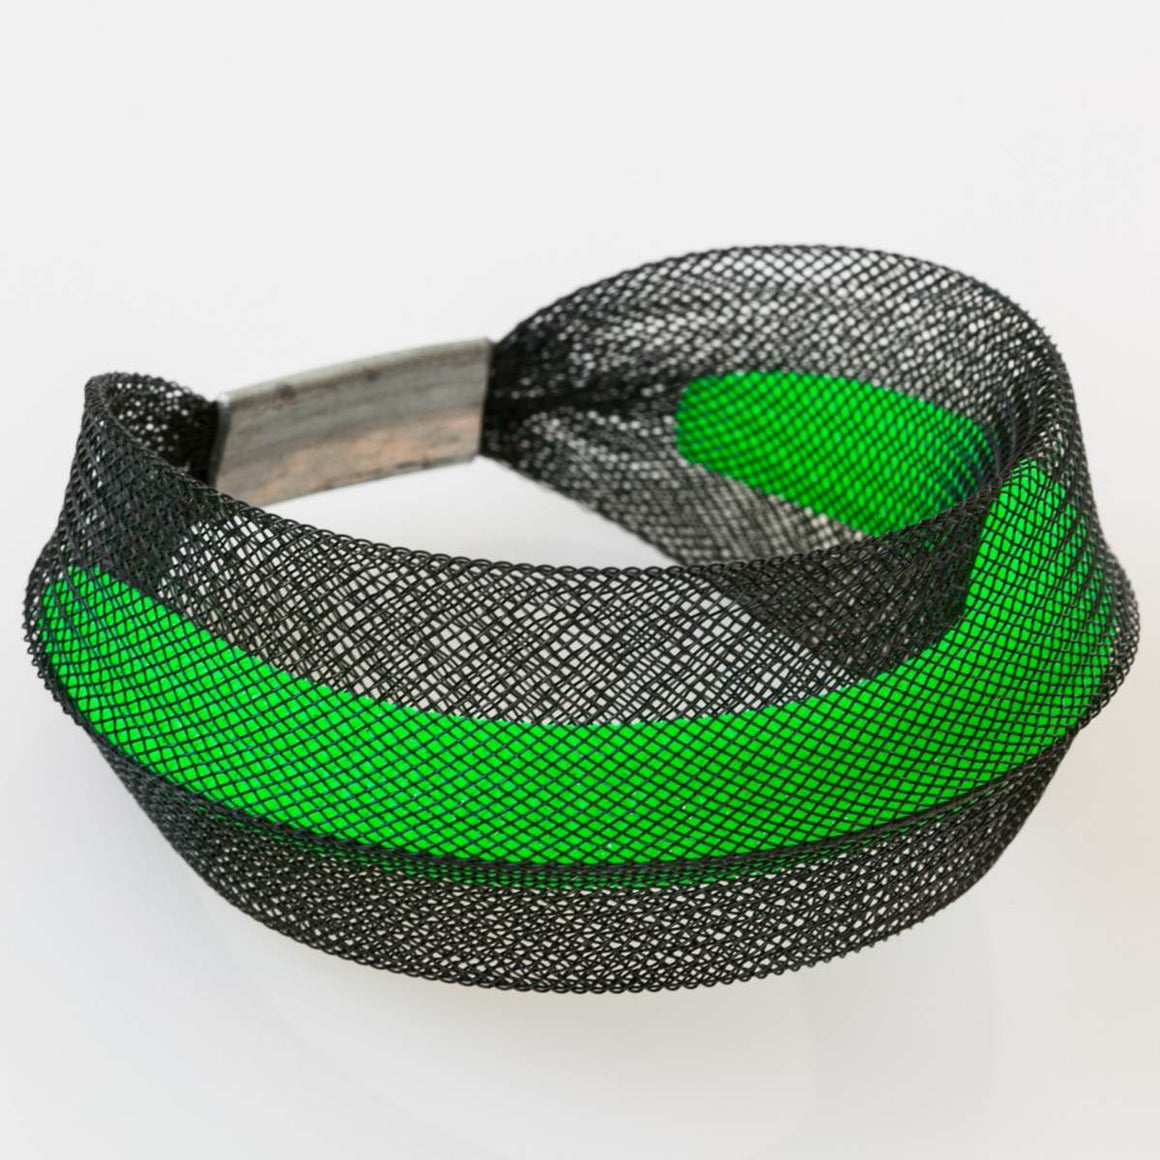 A Black and green bracelet made from finely woven nylon mesh. A Green Mesh tube is visible contained inside a black mesh tube.